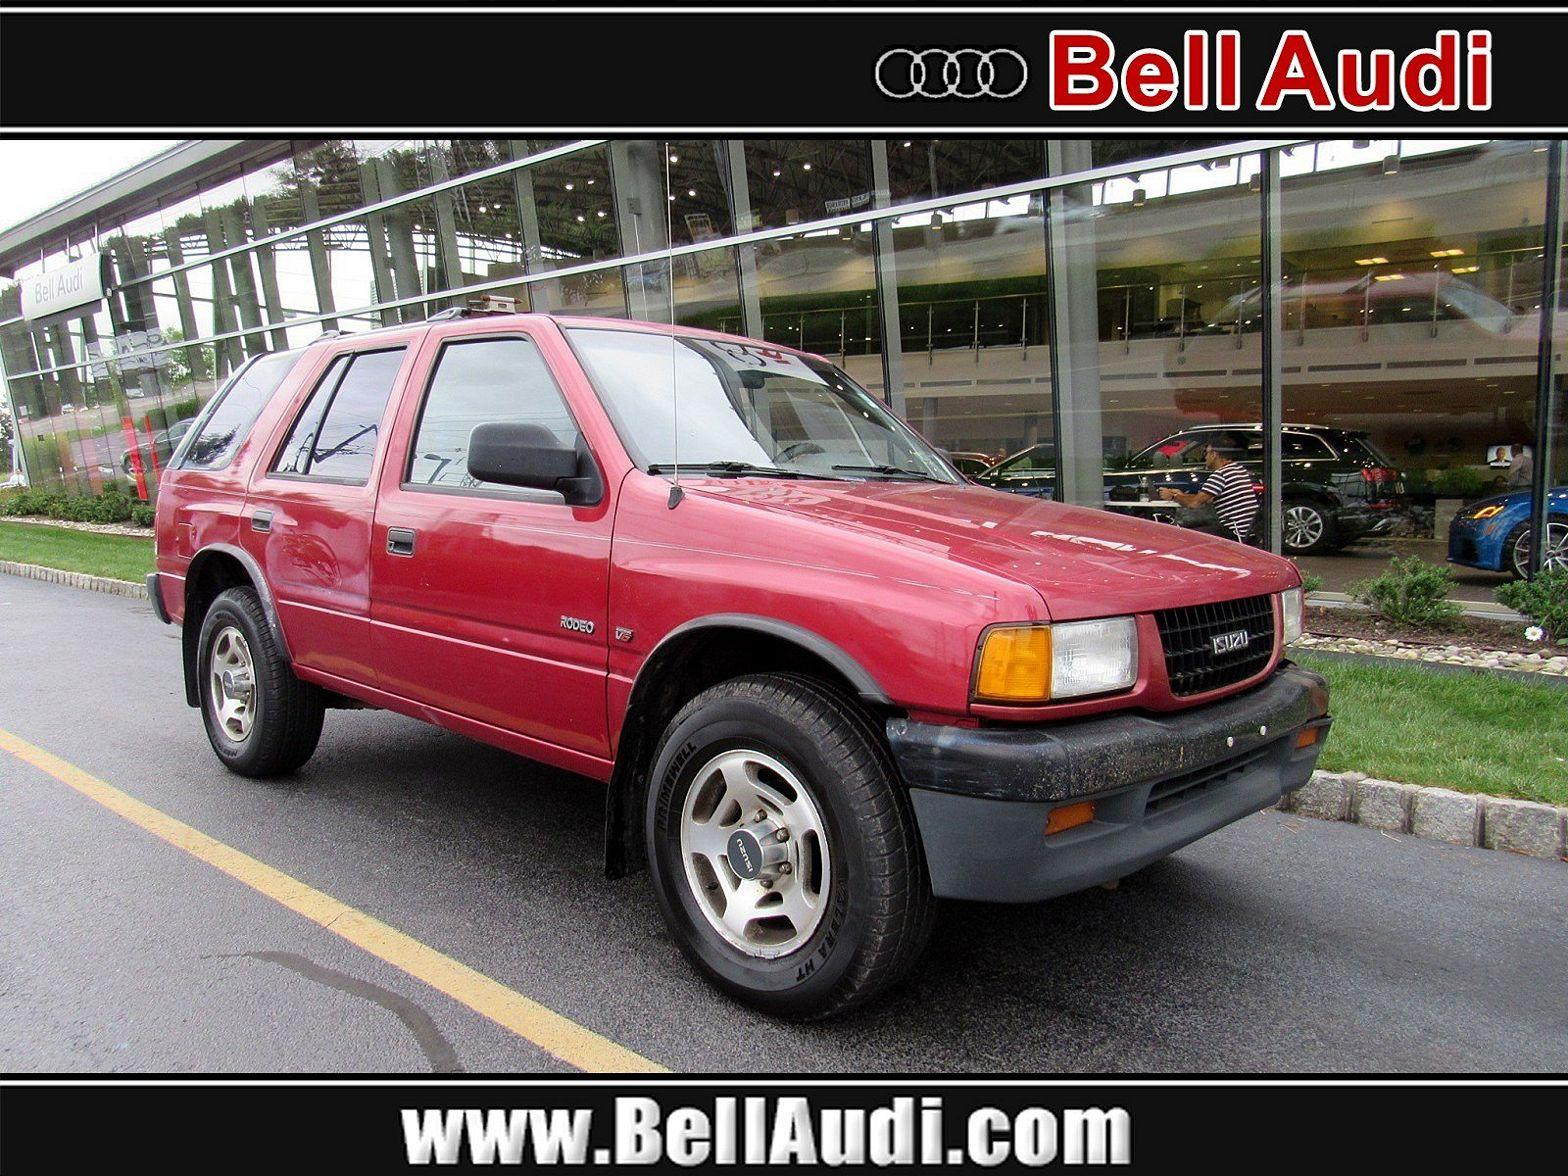 1997 Isuzu Rodeo $999